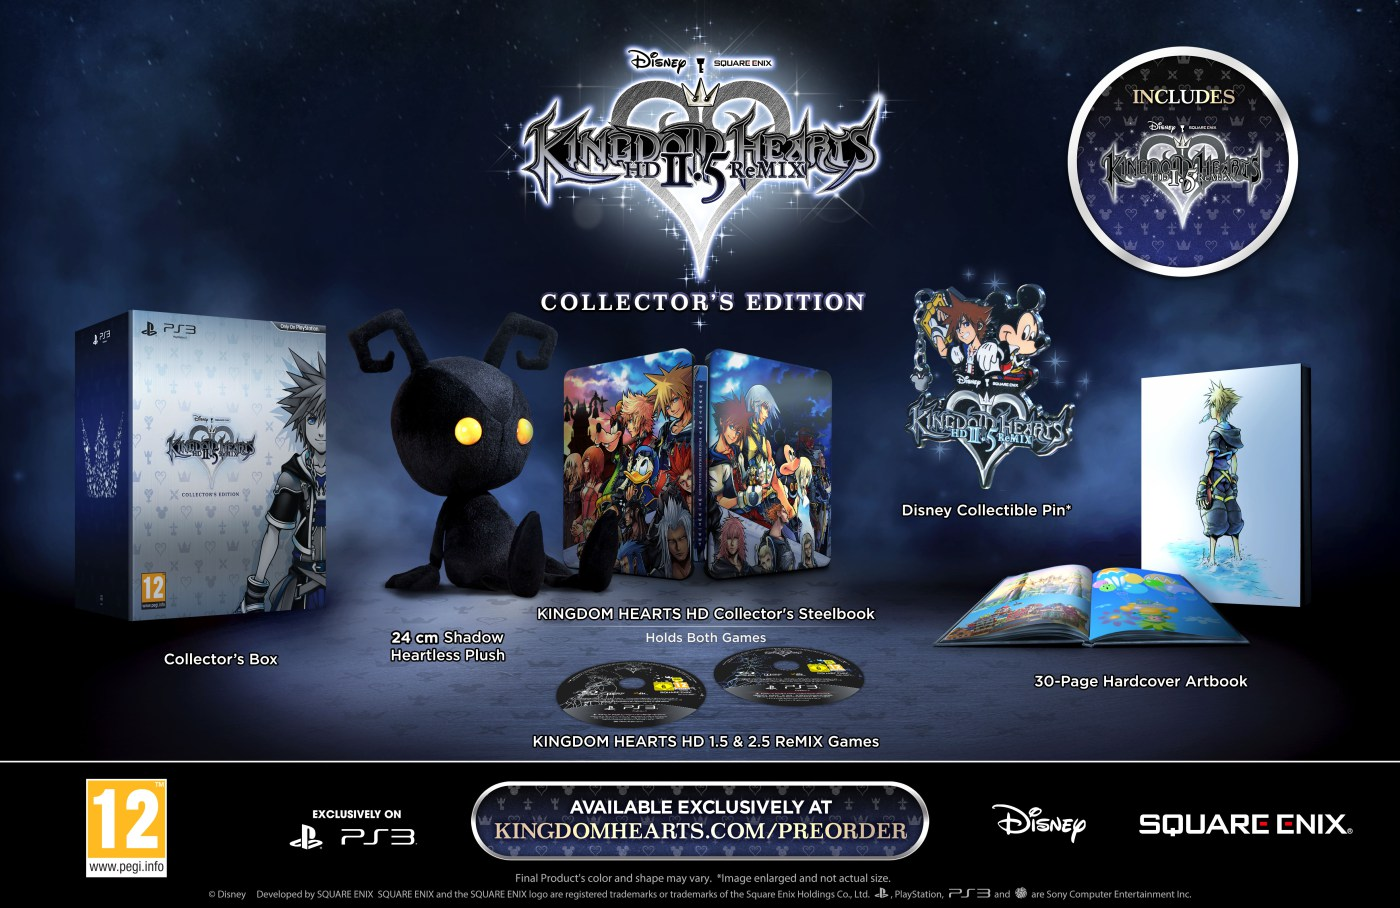 kingdom-hearts-hd-25-remix-collectors-edition-2